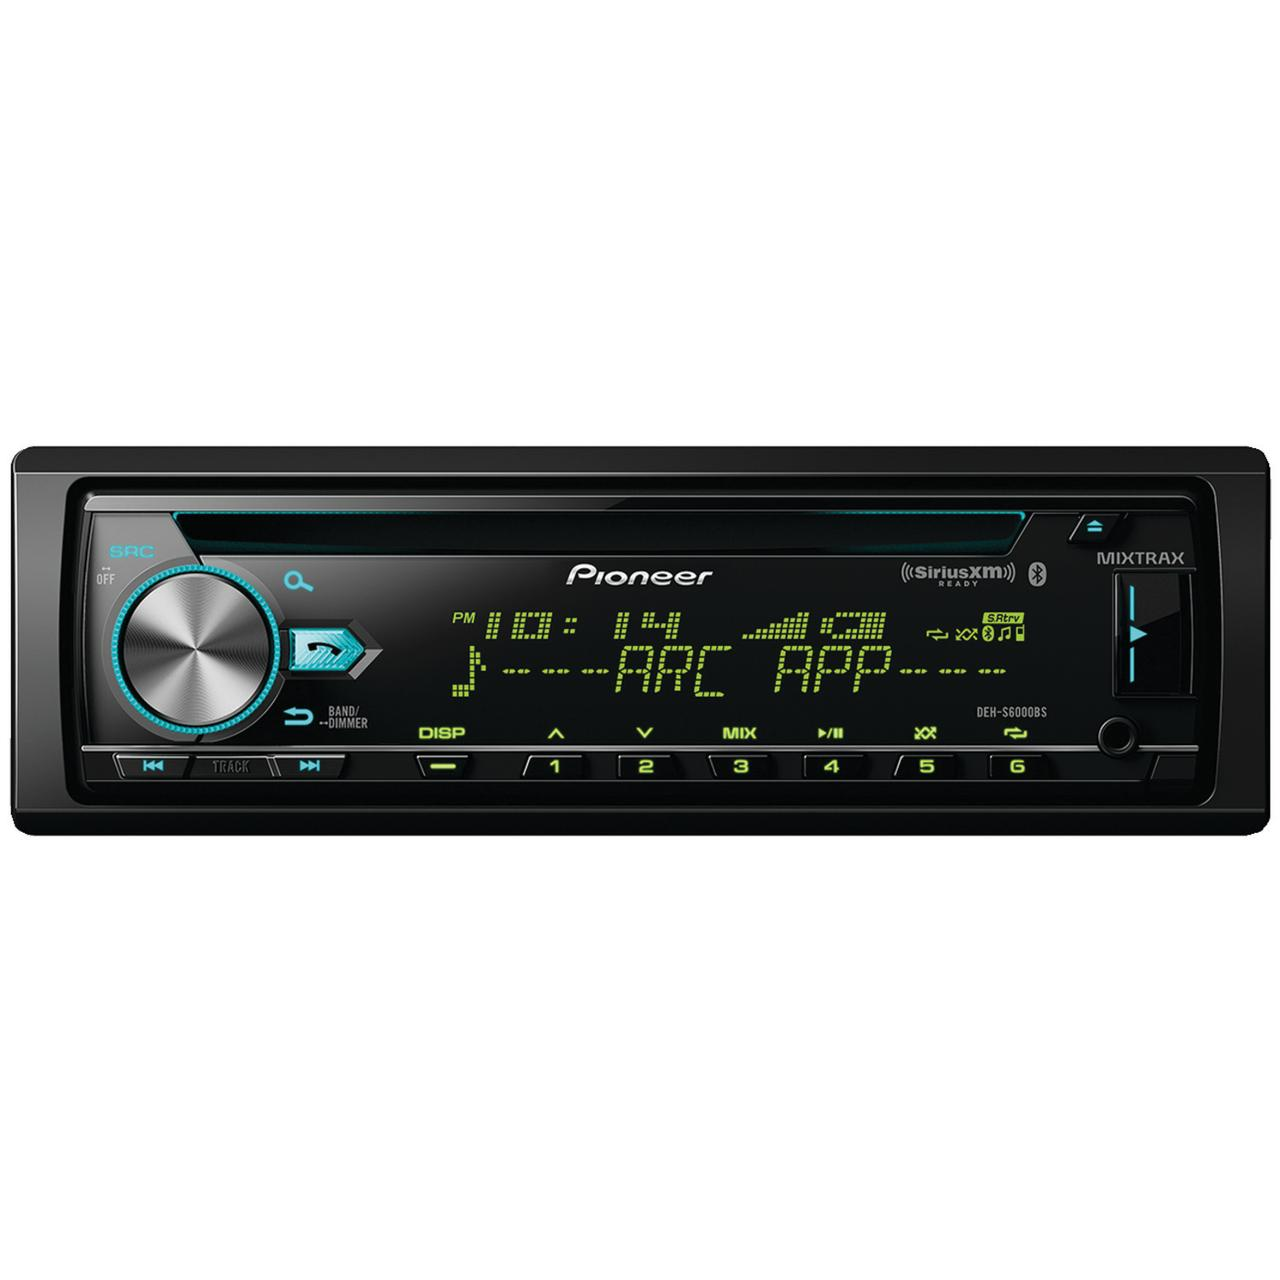 Pioneer DEH-S6000BS Single-DIN In-dash CDReceiver With Bluetooth & SiriusXM Ready